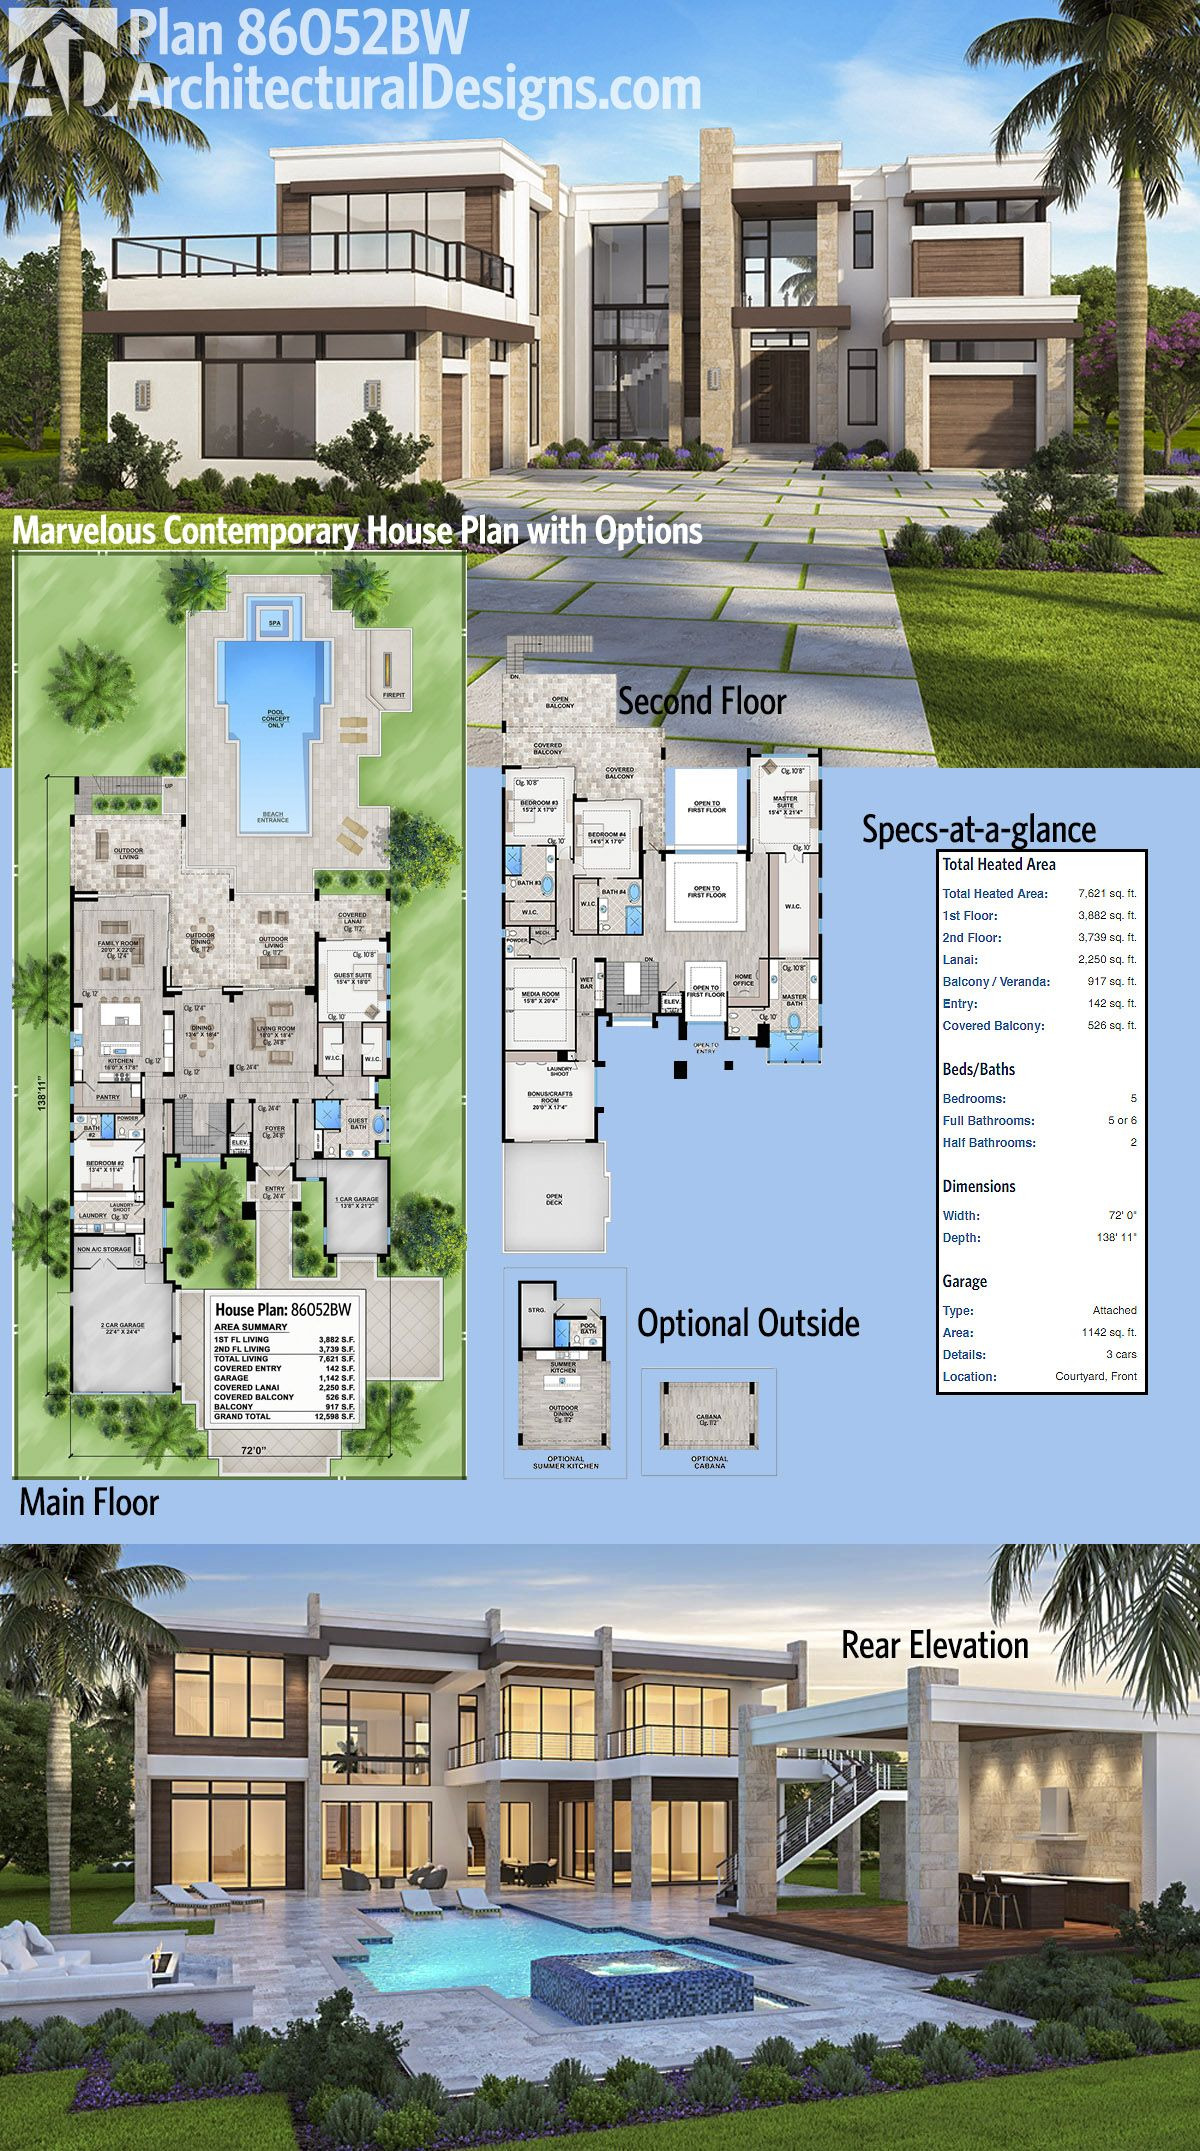 Luxury House Plans with Photos Beautiful Plan Bw Marvelous Contemporary House Plan with Options